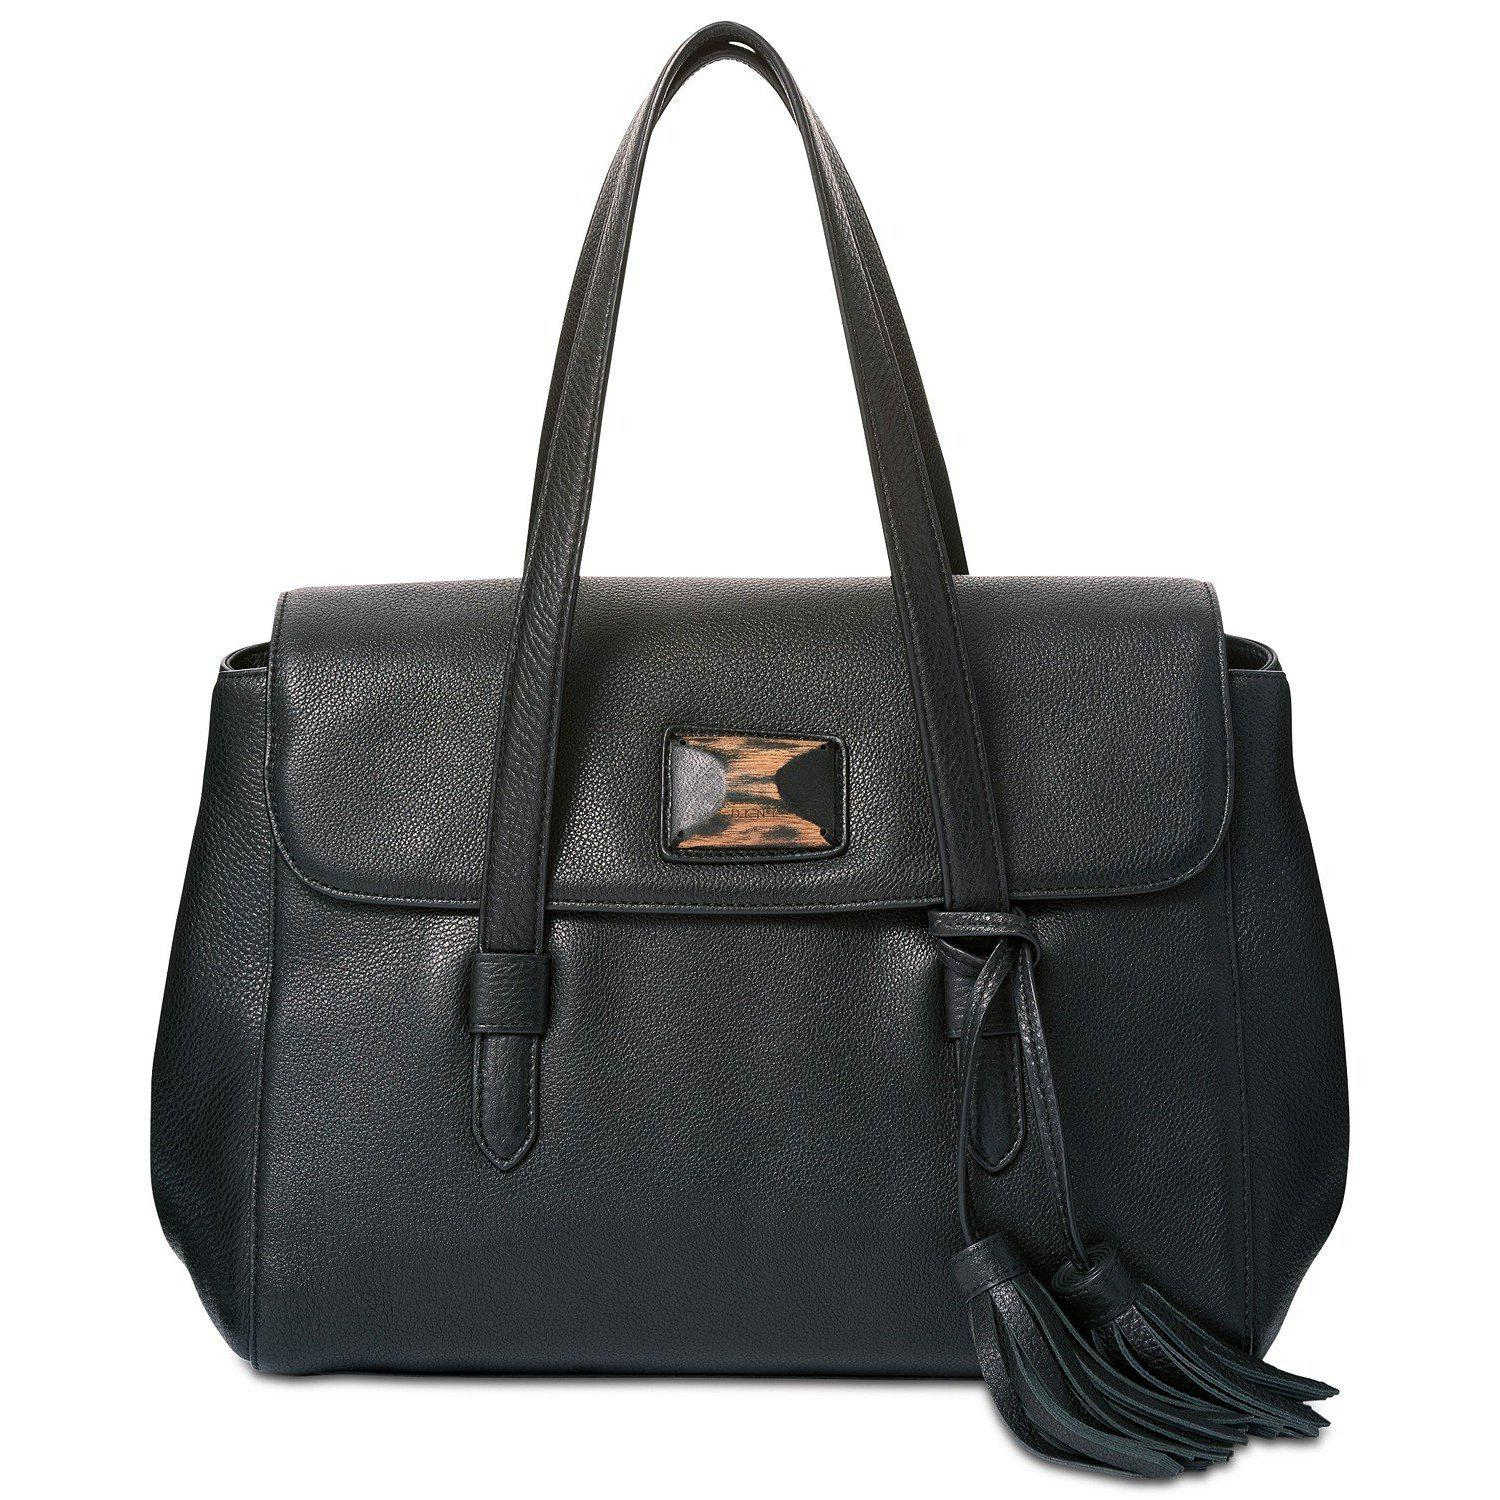 DKNY Alix Medium Flap Satchel-Handbags & Accessories-DKNY-ShoeShock